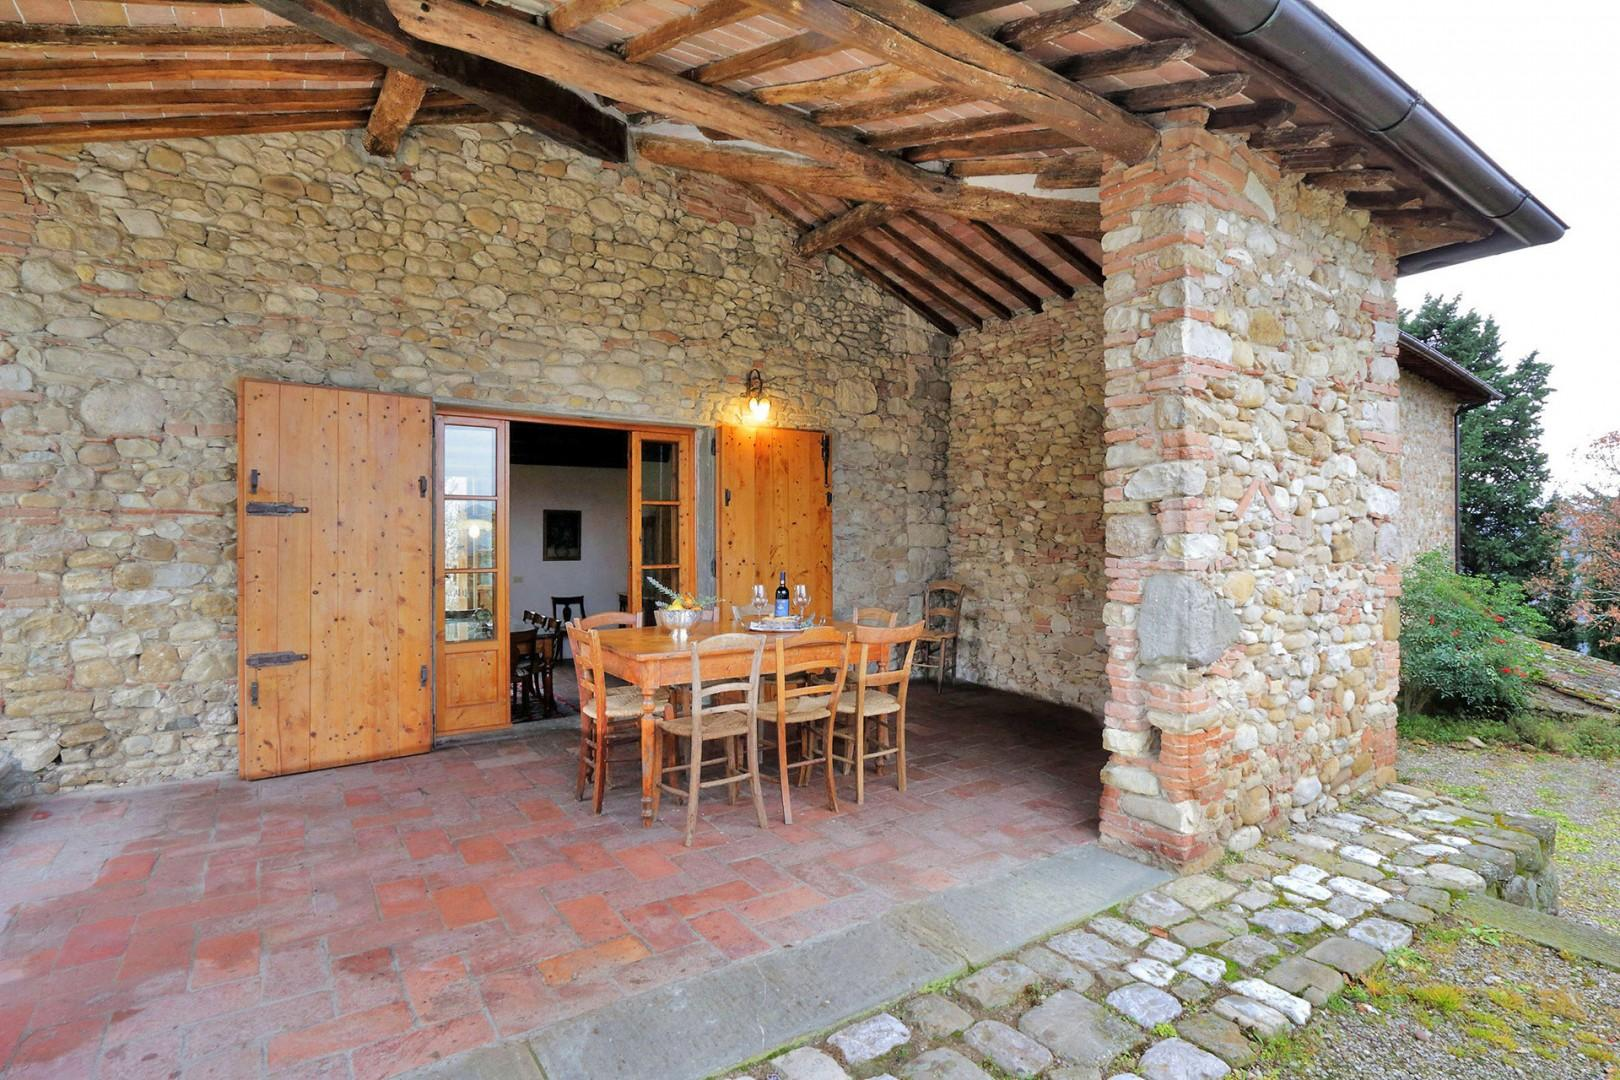 Outside the main level of the villa is a terrace or loggia perfect for dining al fresco.